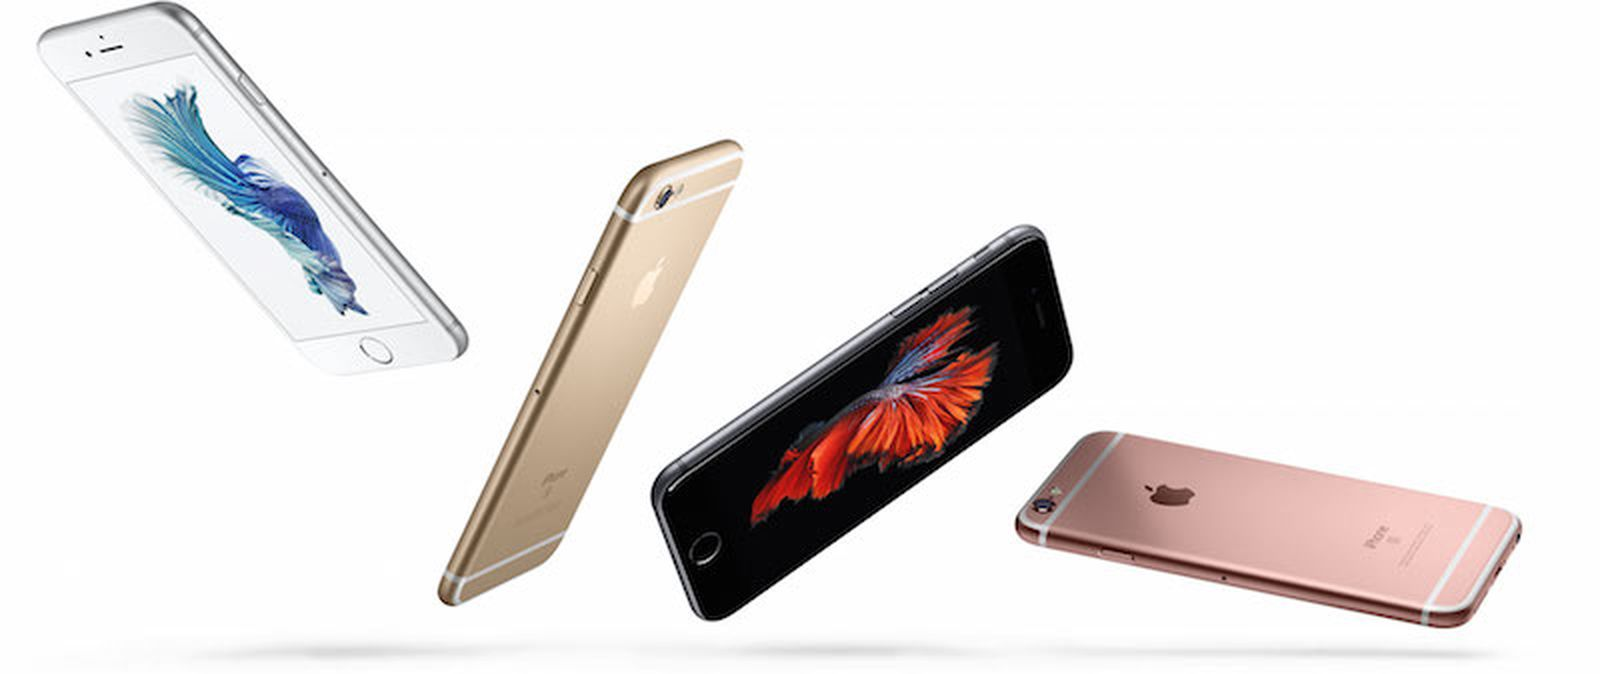 Rumor Claims iOS 15 to Drop Support for iPhone 6s and Original iPhone SE -  MacRumors